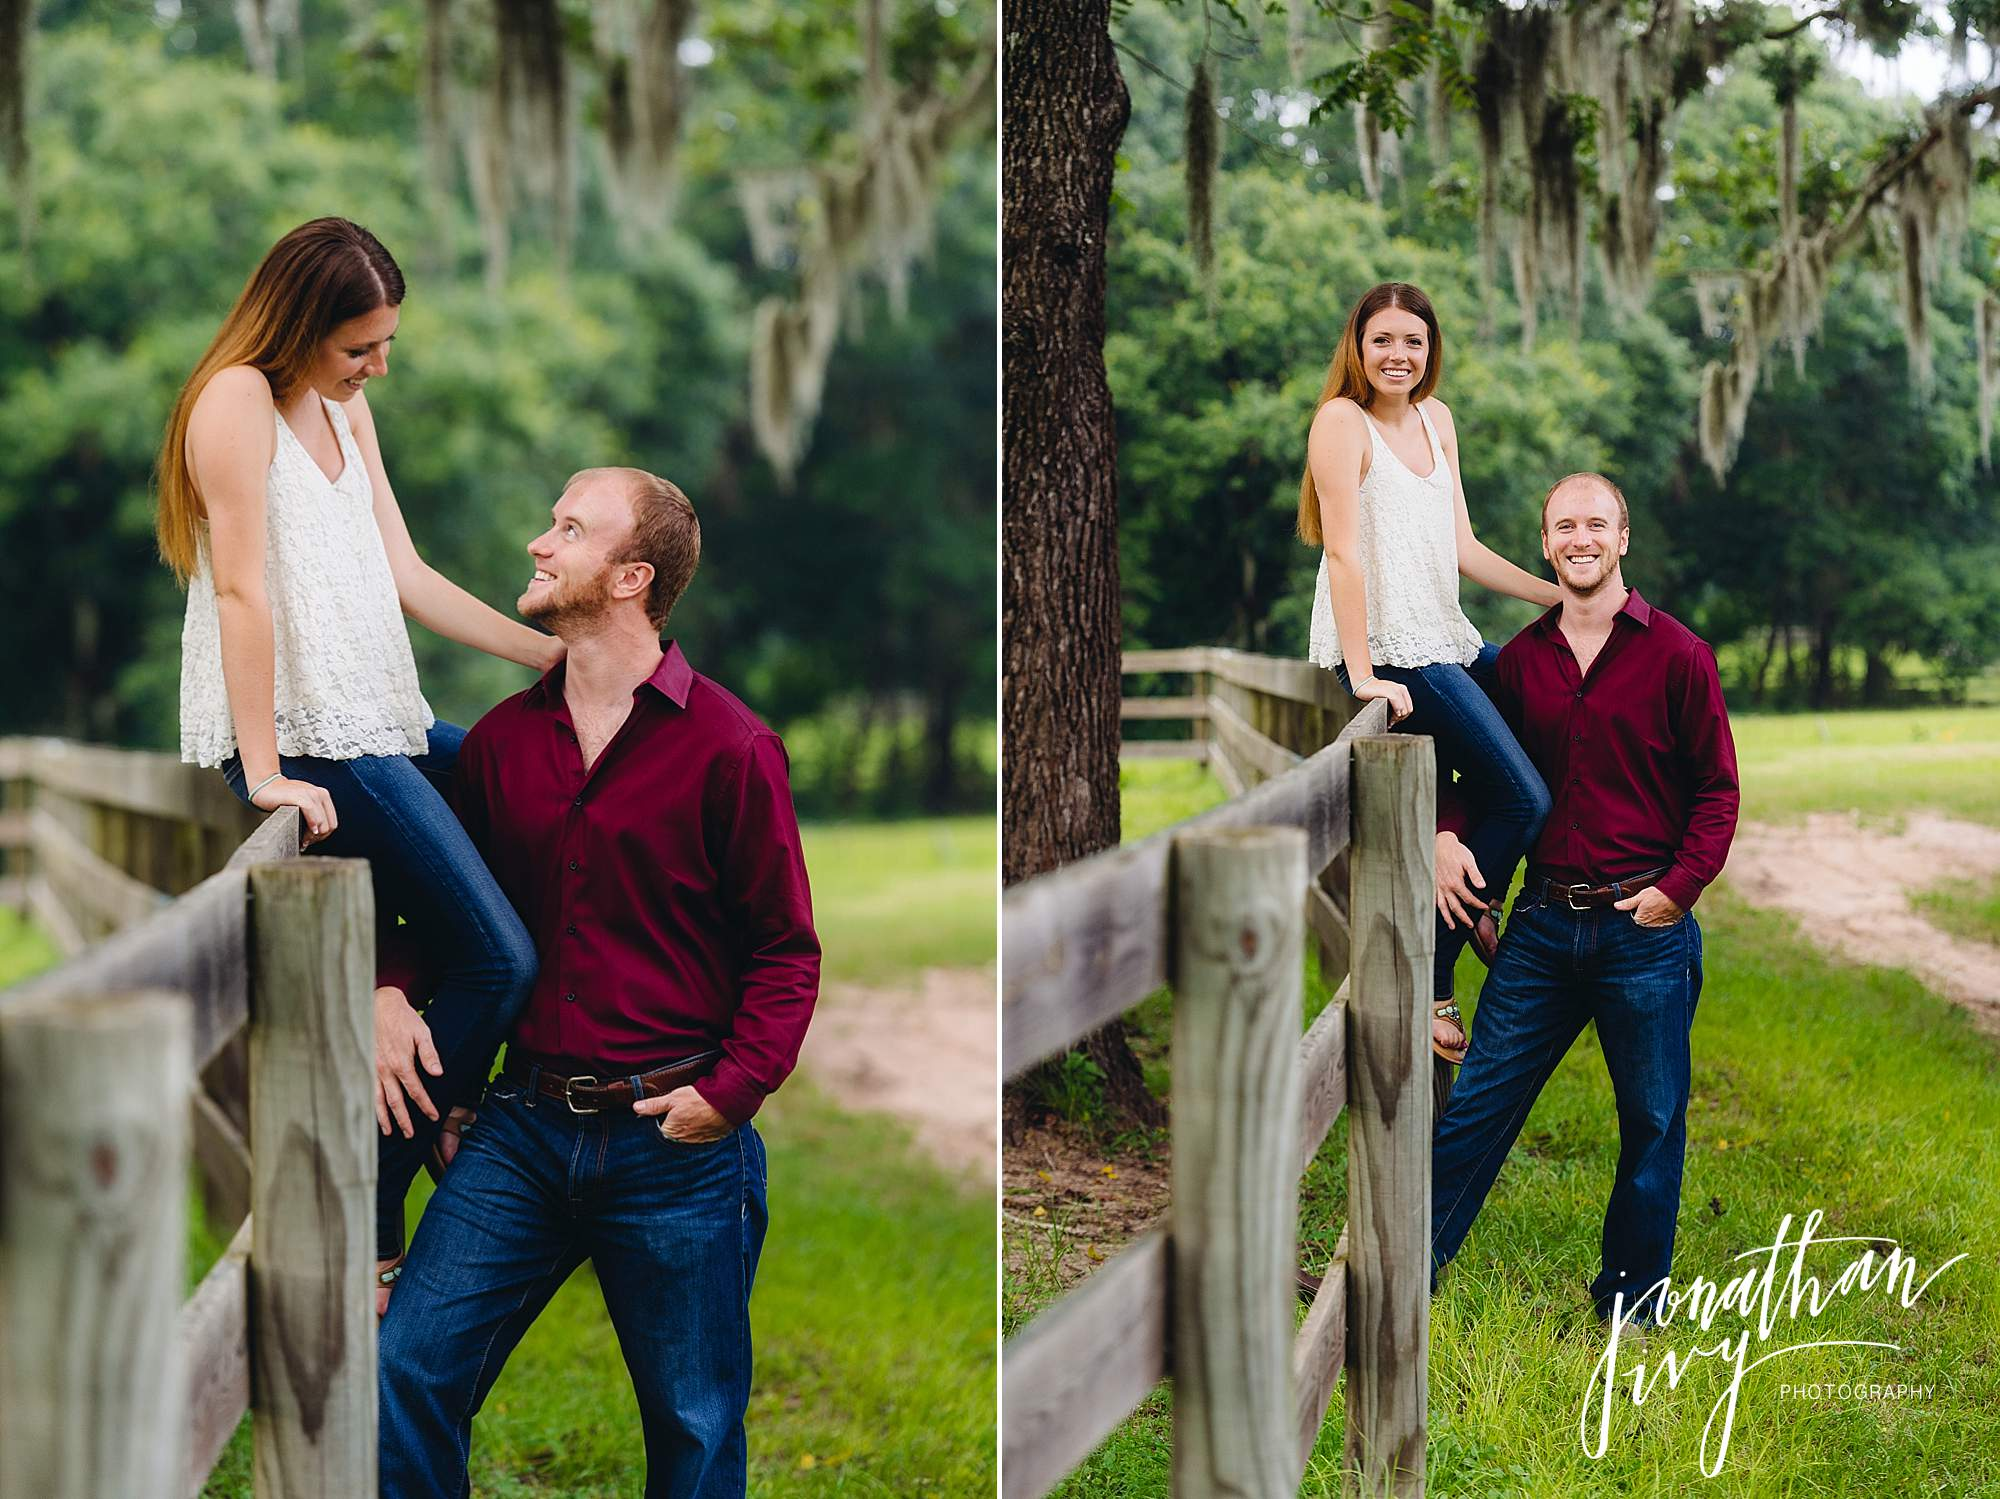 Country-rustic-engagement-photographer_0003.jpg